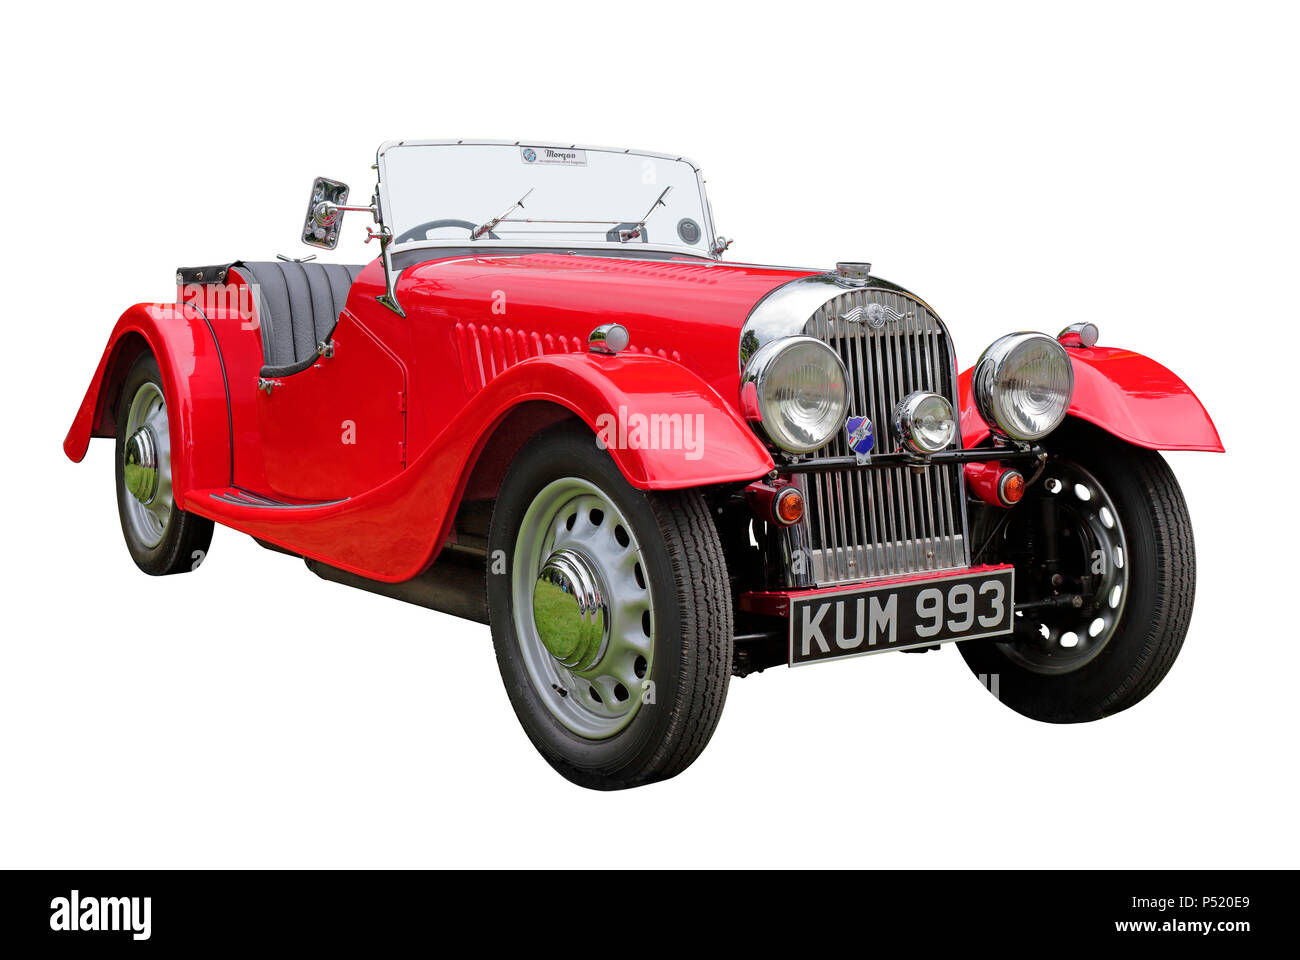 1947 Morgan Flad Rad 4/4 2 Seater Sports Car isolated on a white background - Stock Image